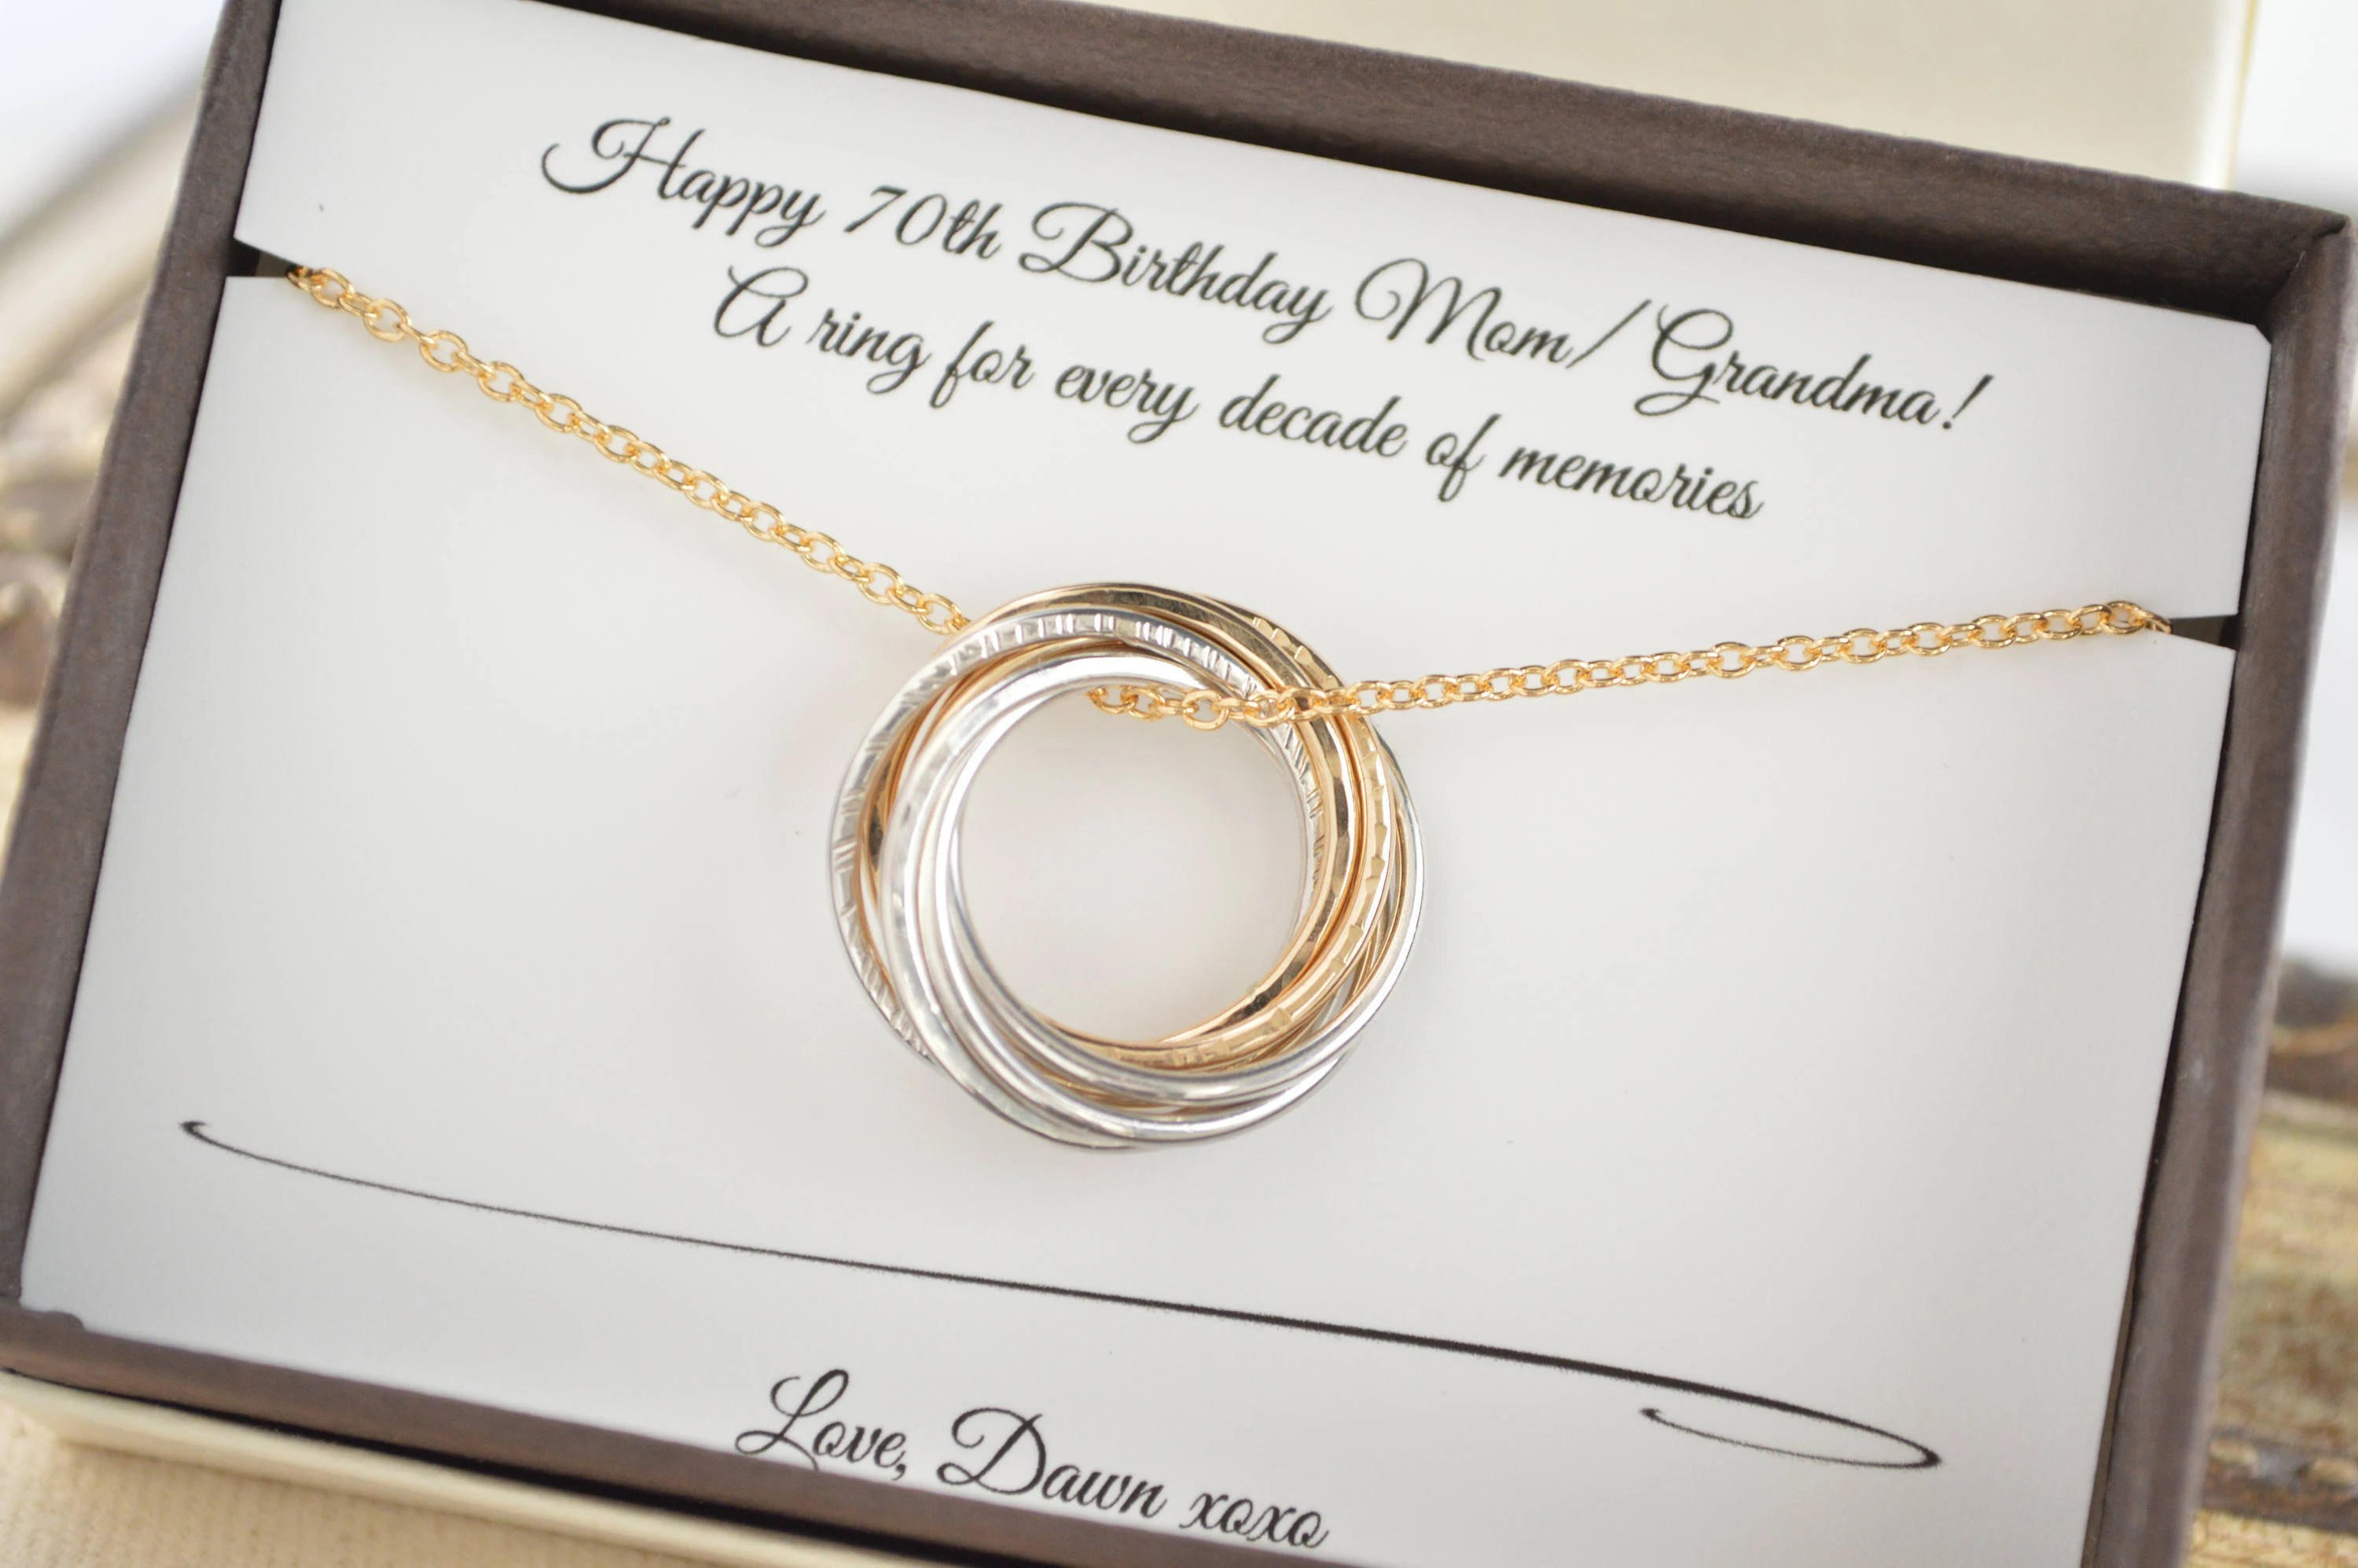 70th Birthday Gift For Mom And Grandma Necklace, 7th